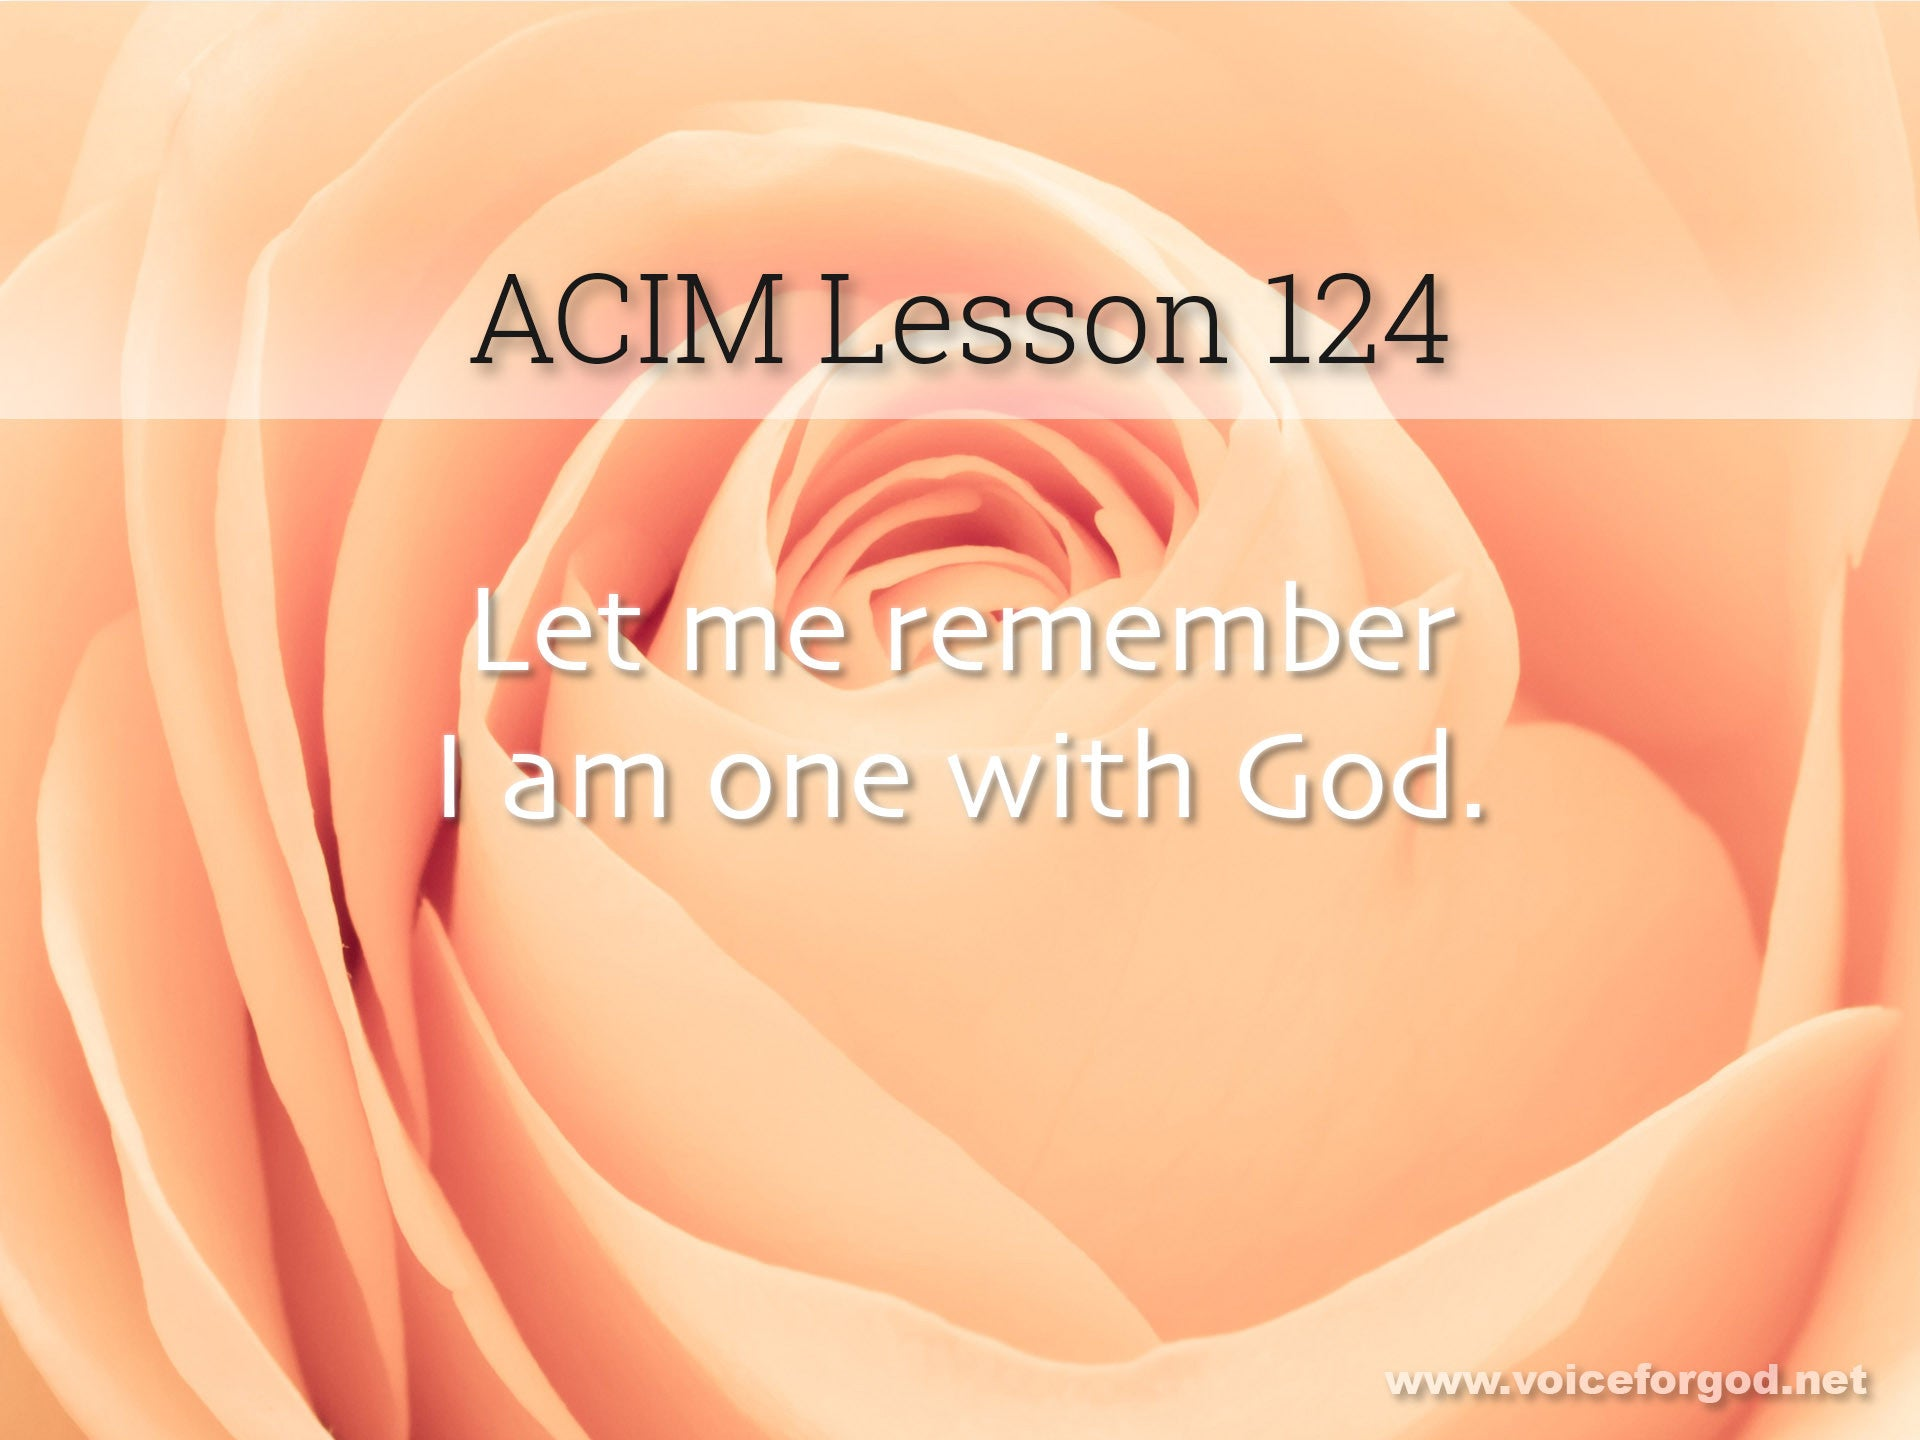 ACIM Lesson 124 - A Course in Miracles Workbook Lesson 124